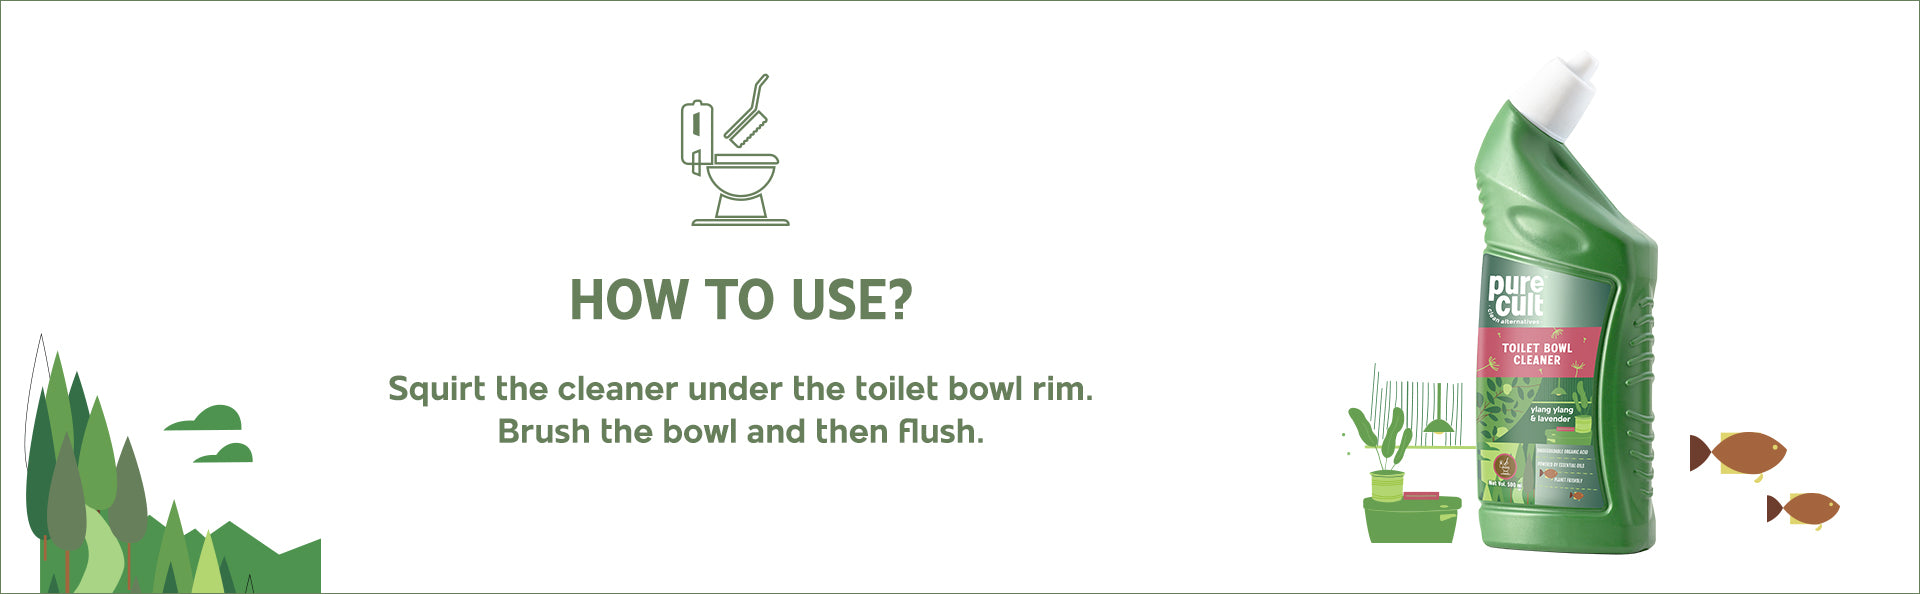 How to use Pure Cult Toilet Bowl Cleaner